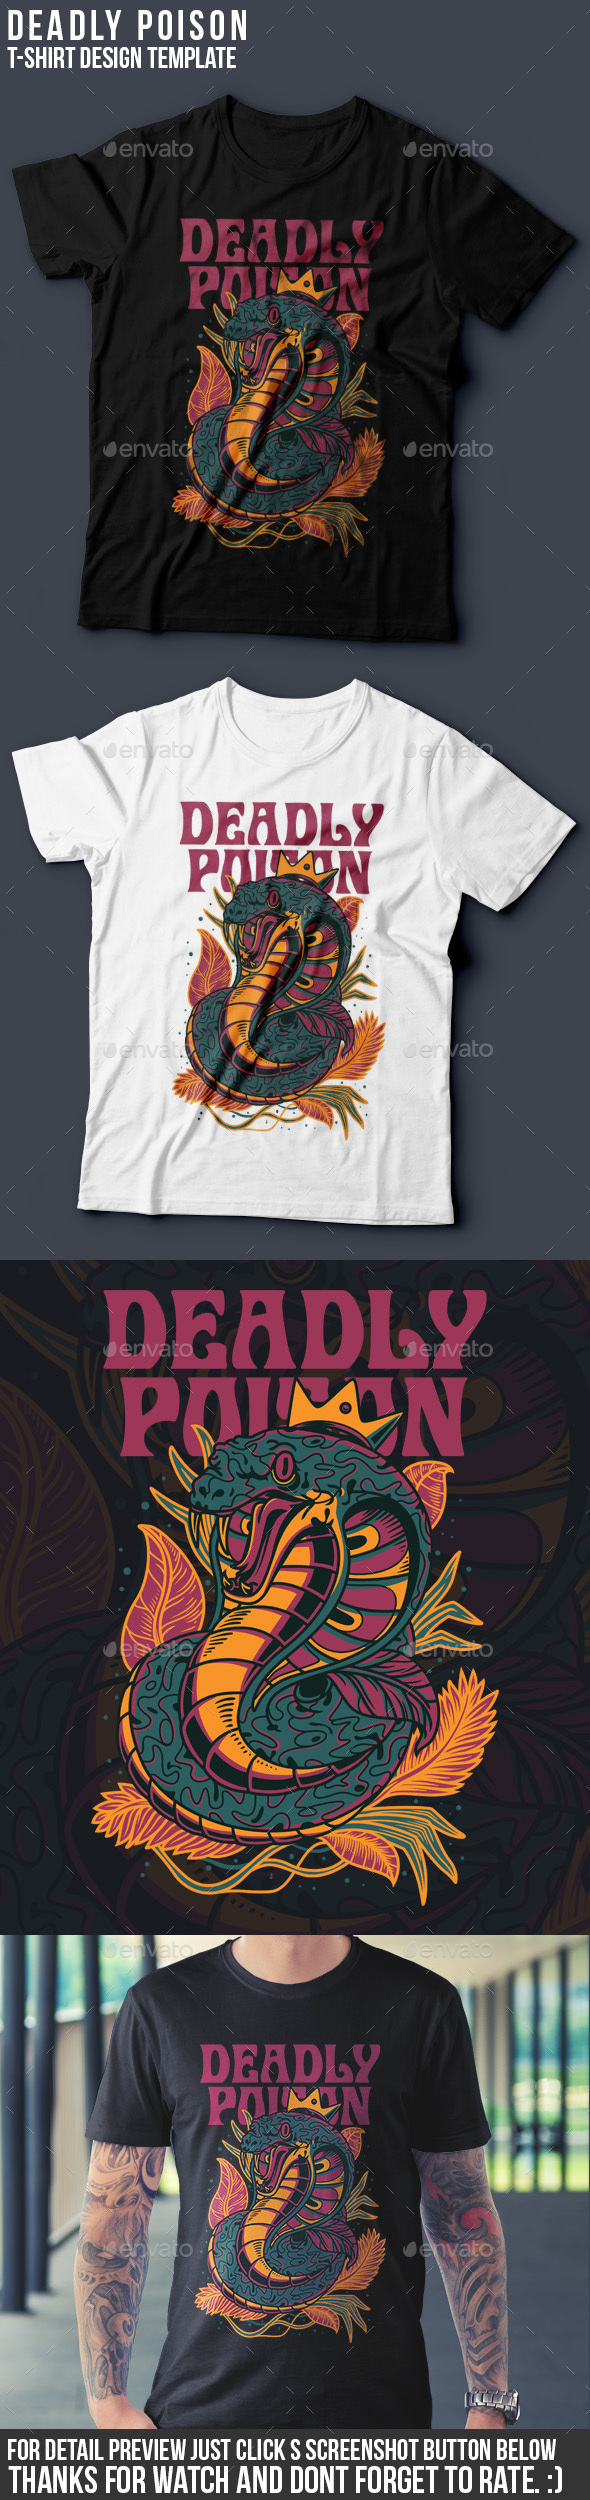 Deadly Poison T-Shirt Design - Funny Designs